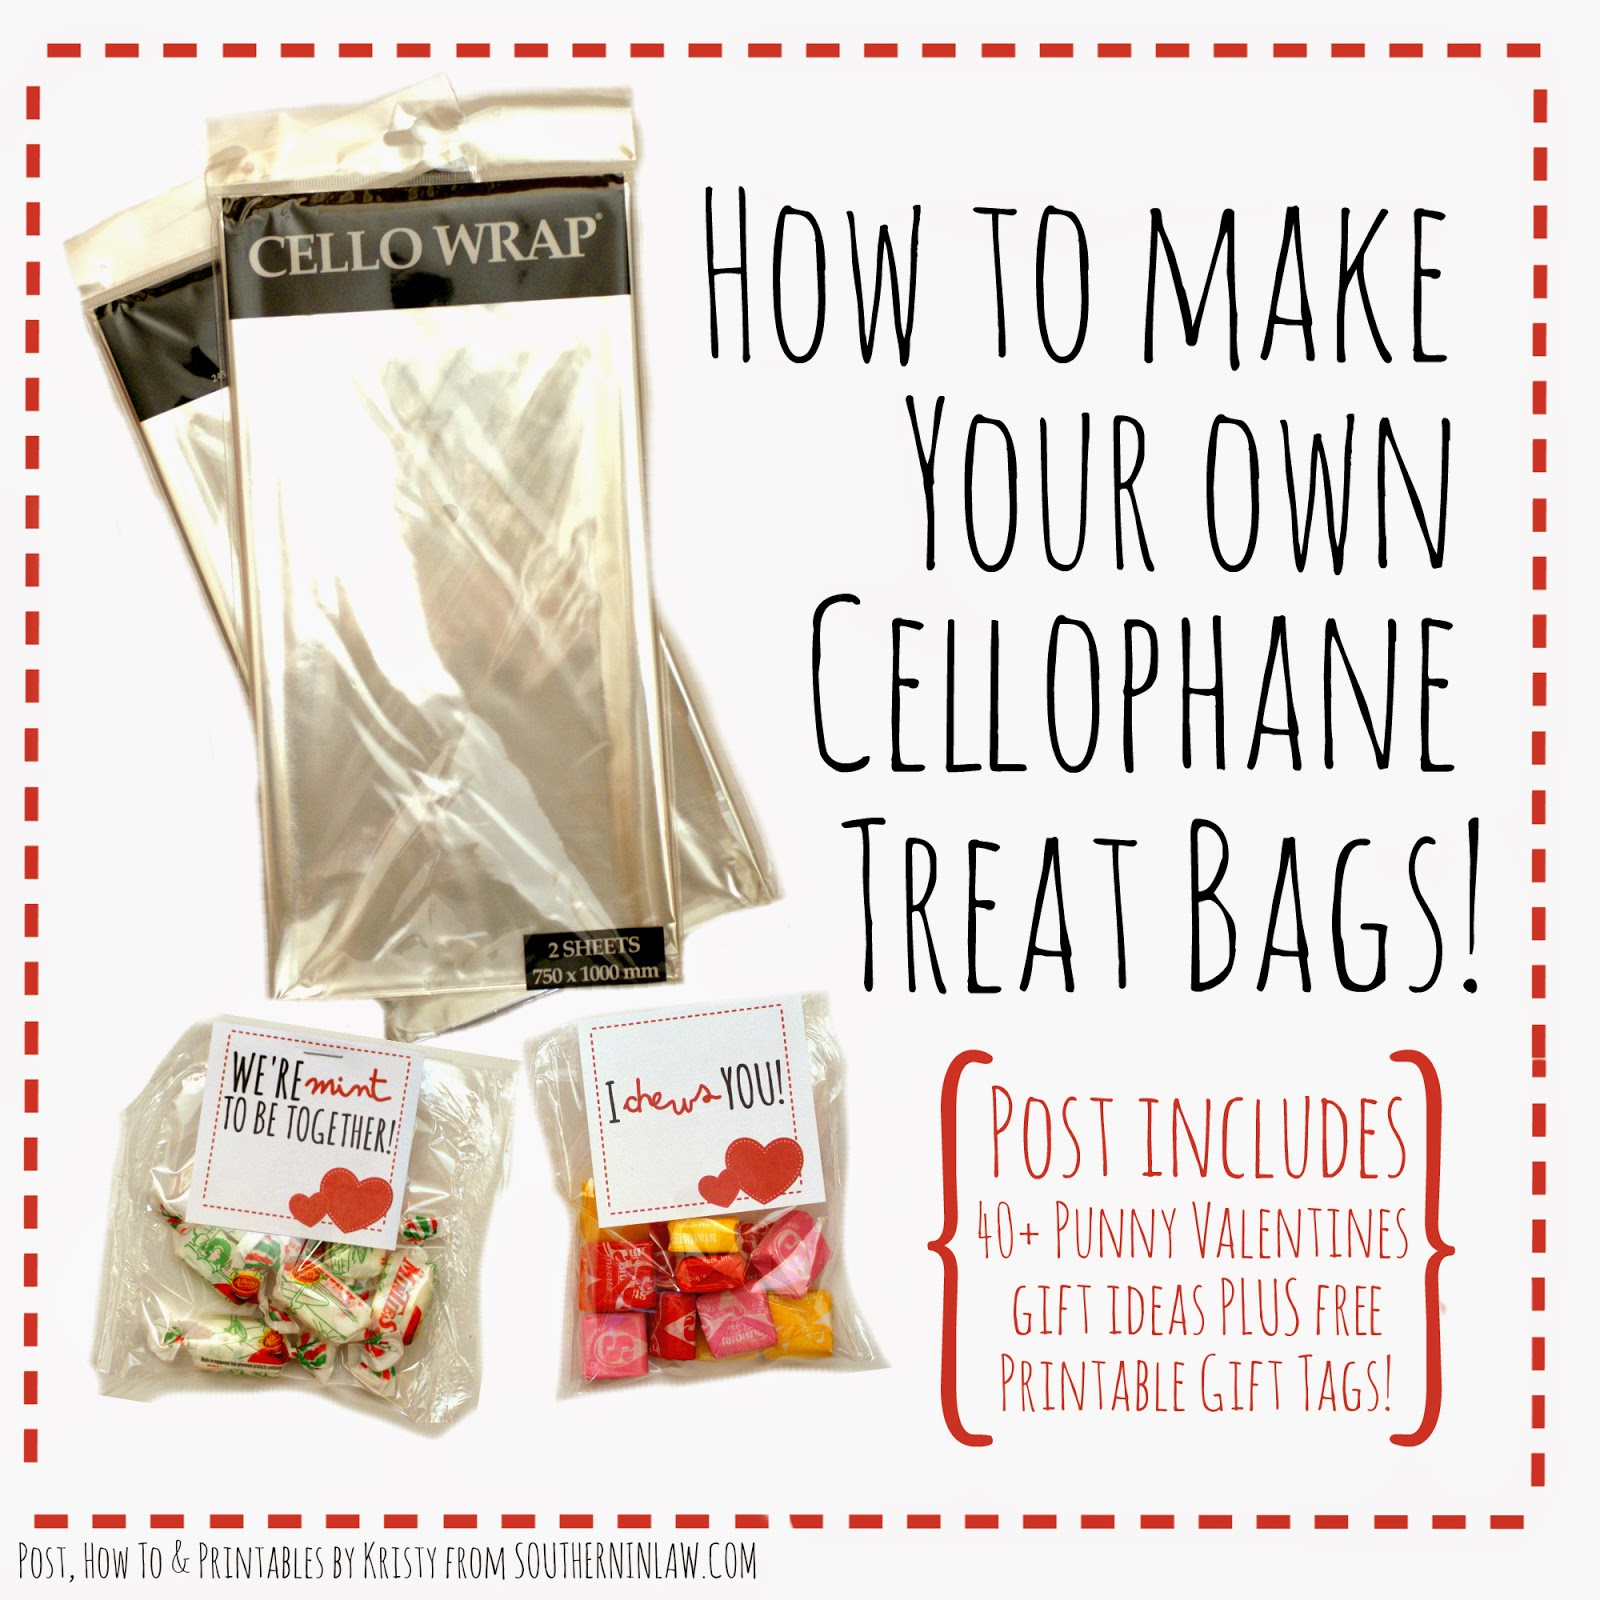 How to make your own Cellophane Treat Bags - DIY Cellophane Treat Bags with Iron